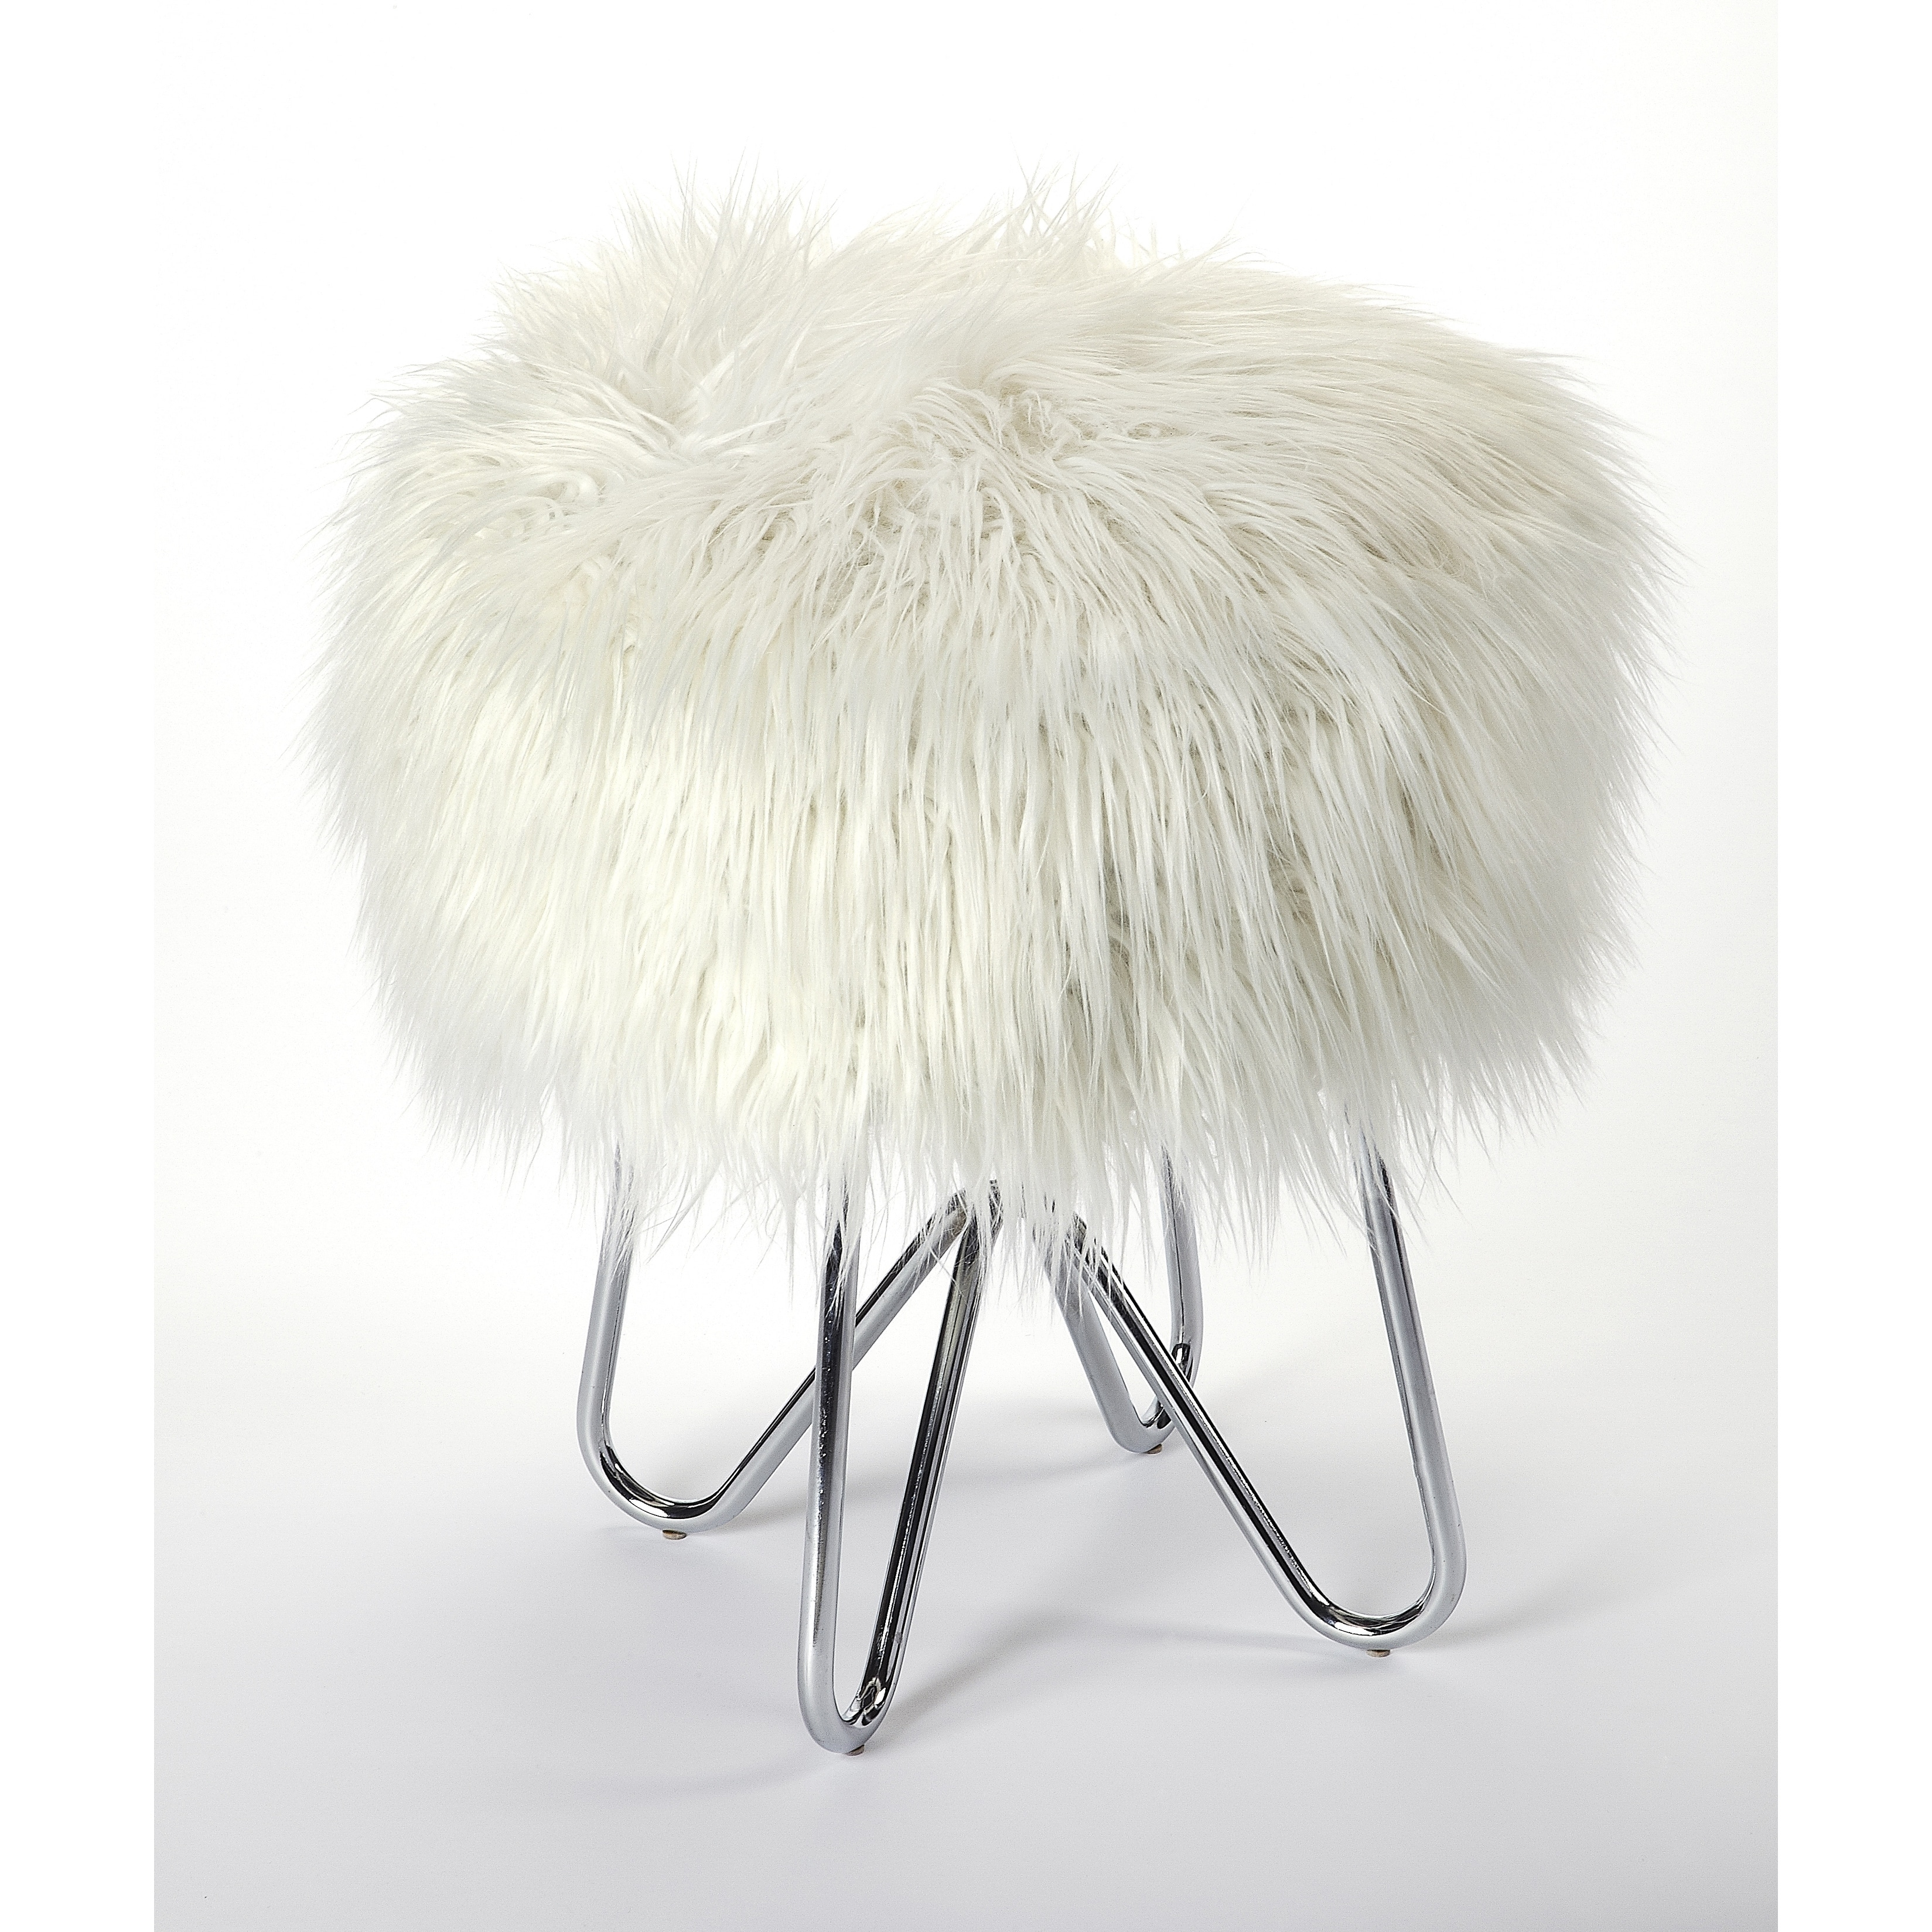 Image of: Shop Black Friday Deals On Handmade Butler Ezra White Faux Fur Stool Overstock 27102381